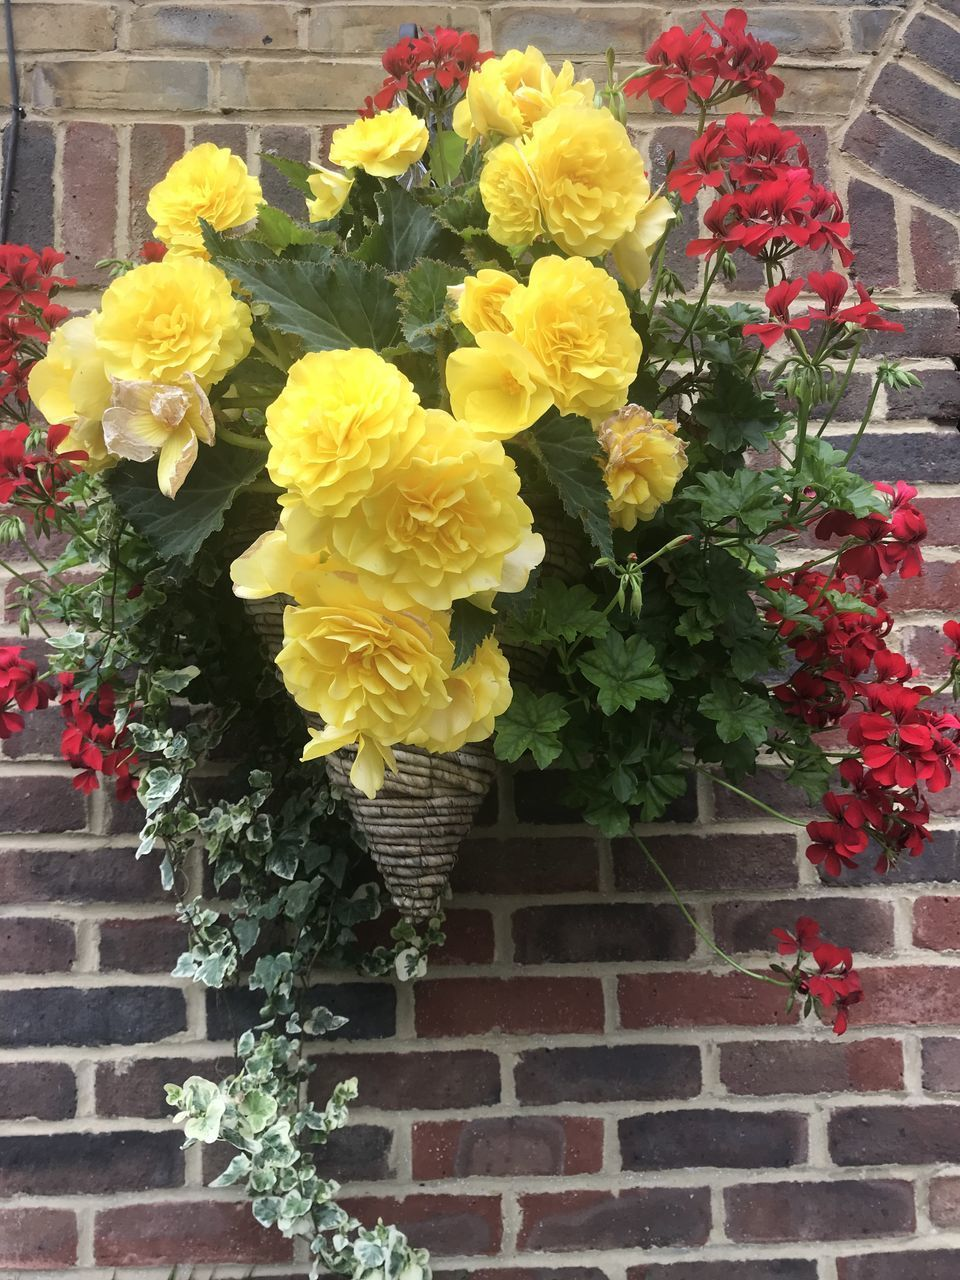 flower, flowering plant, plant, beauty in nature, yellow, freshness, vulnerability, fragility, growth, nature, petal, flower head, inflorescence, architecture, no people, day, close-up, built structure, outdoors, multi colored, flower arrangement, brick, bouquet, flower pot, lantana